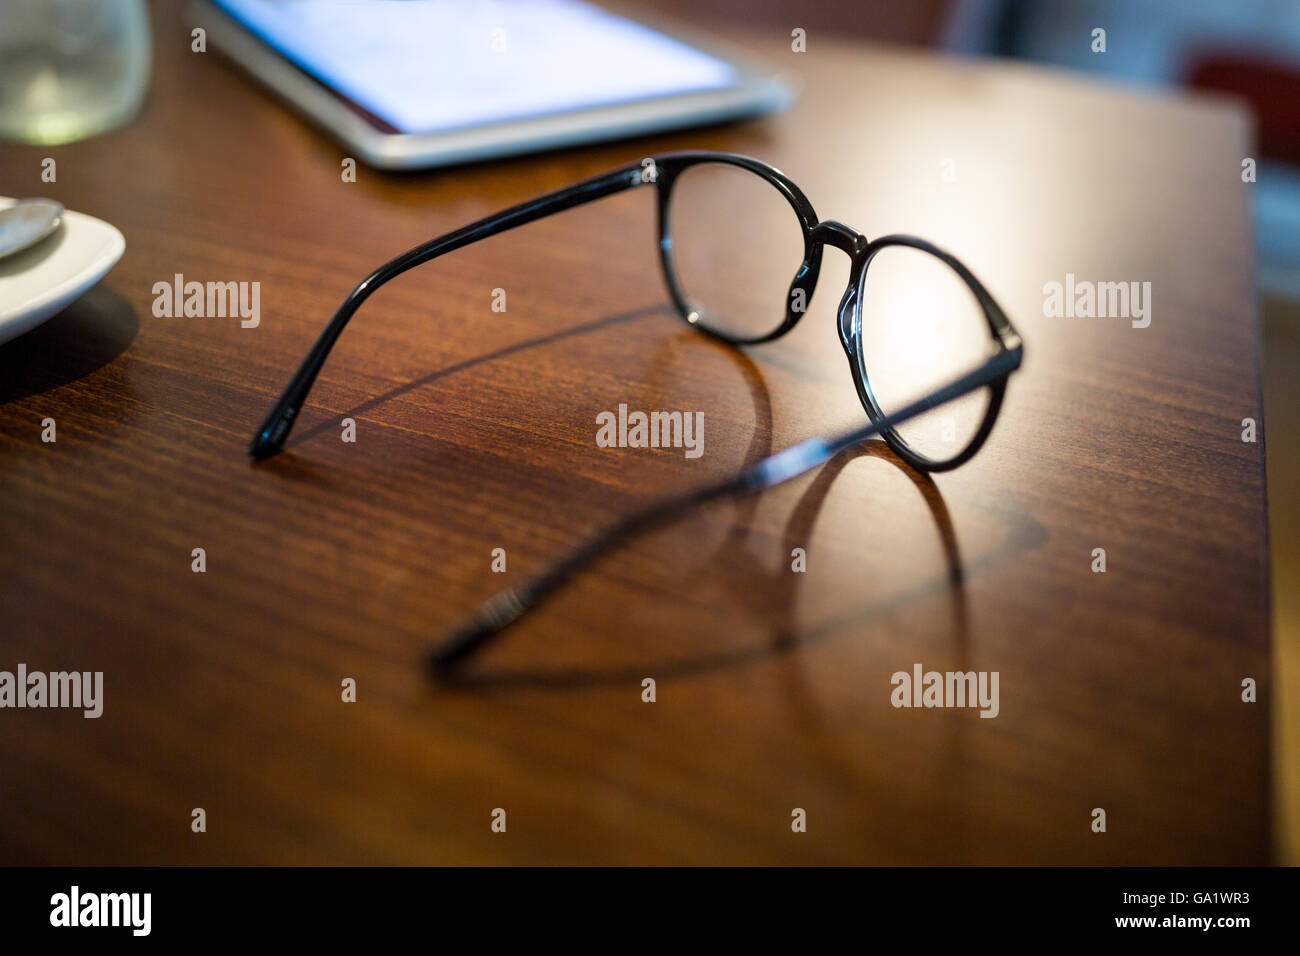 Close-up of spectacle and mobile phone on wooden table - Stock Image